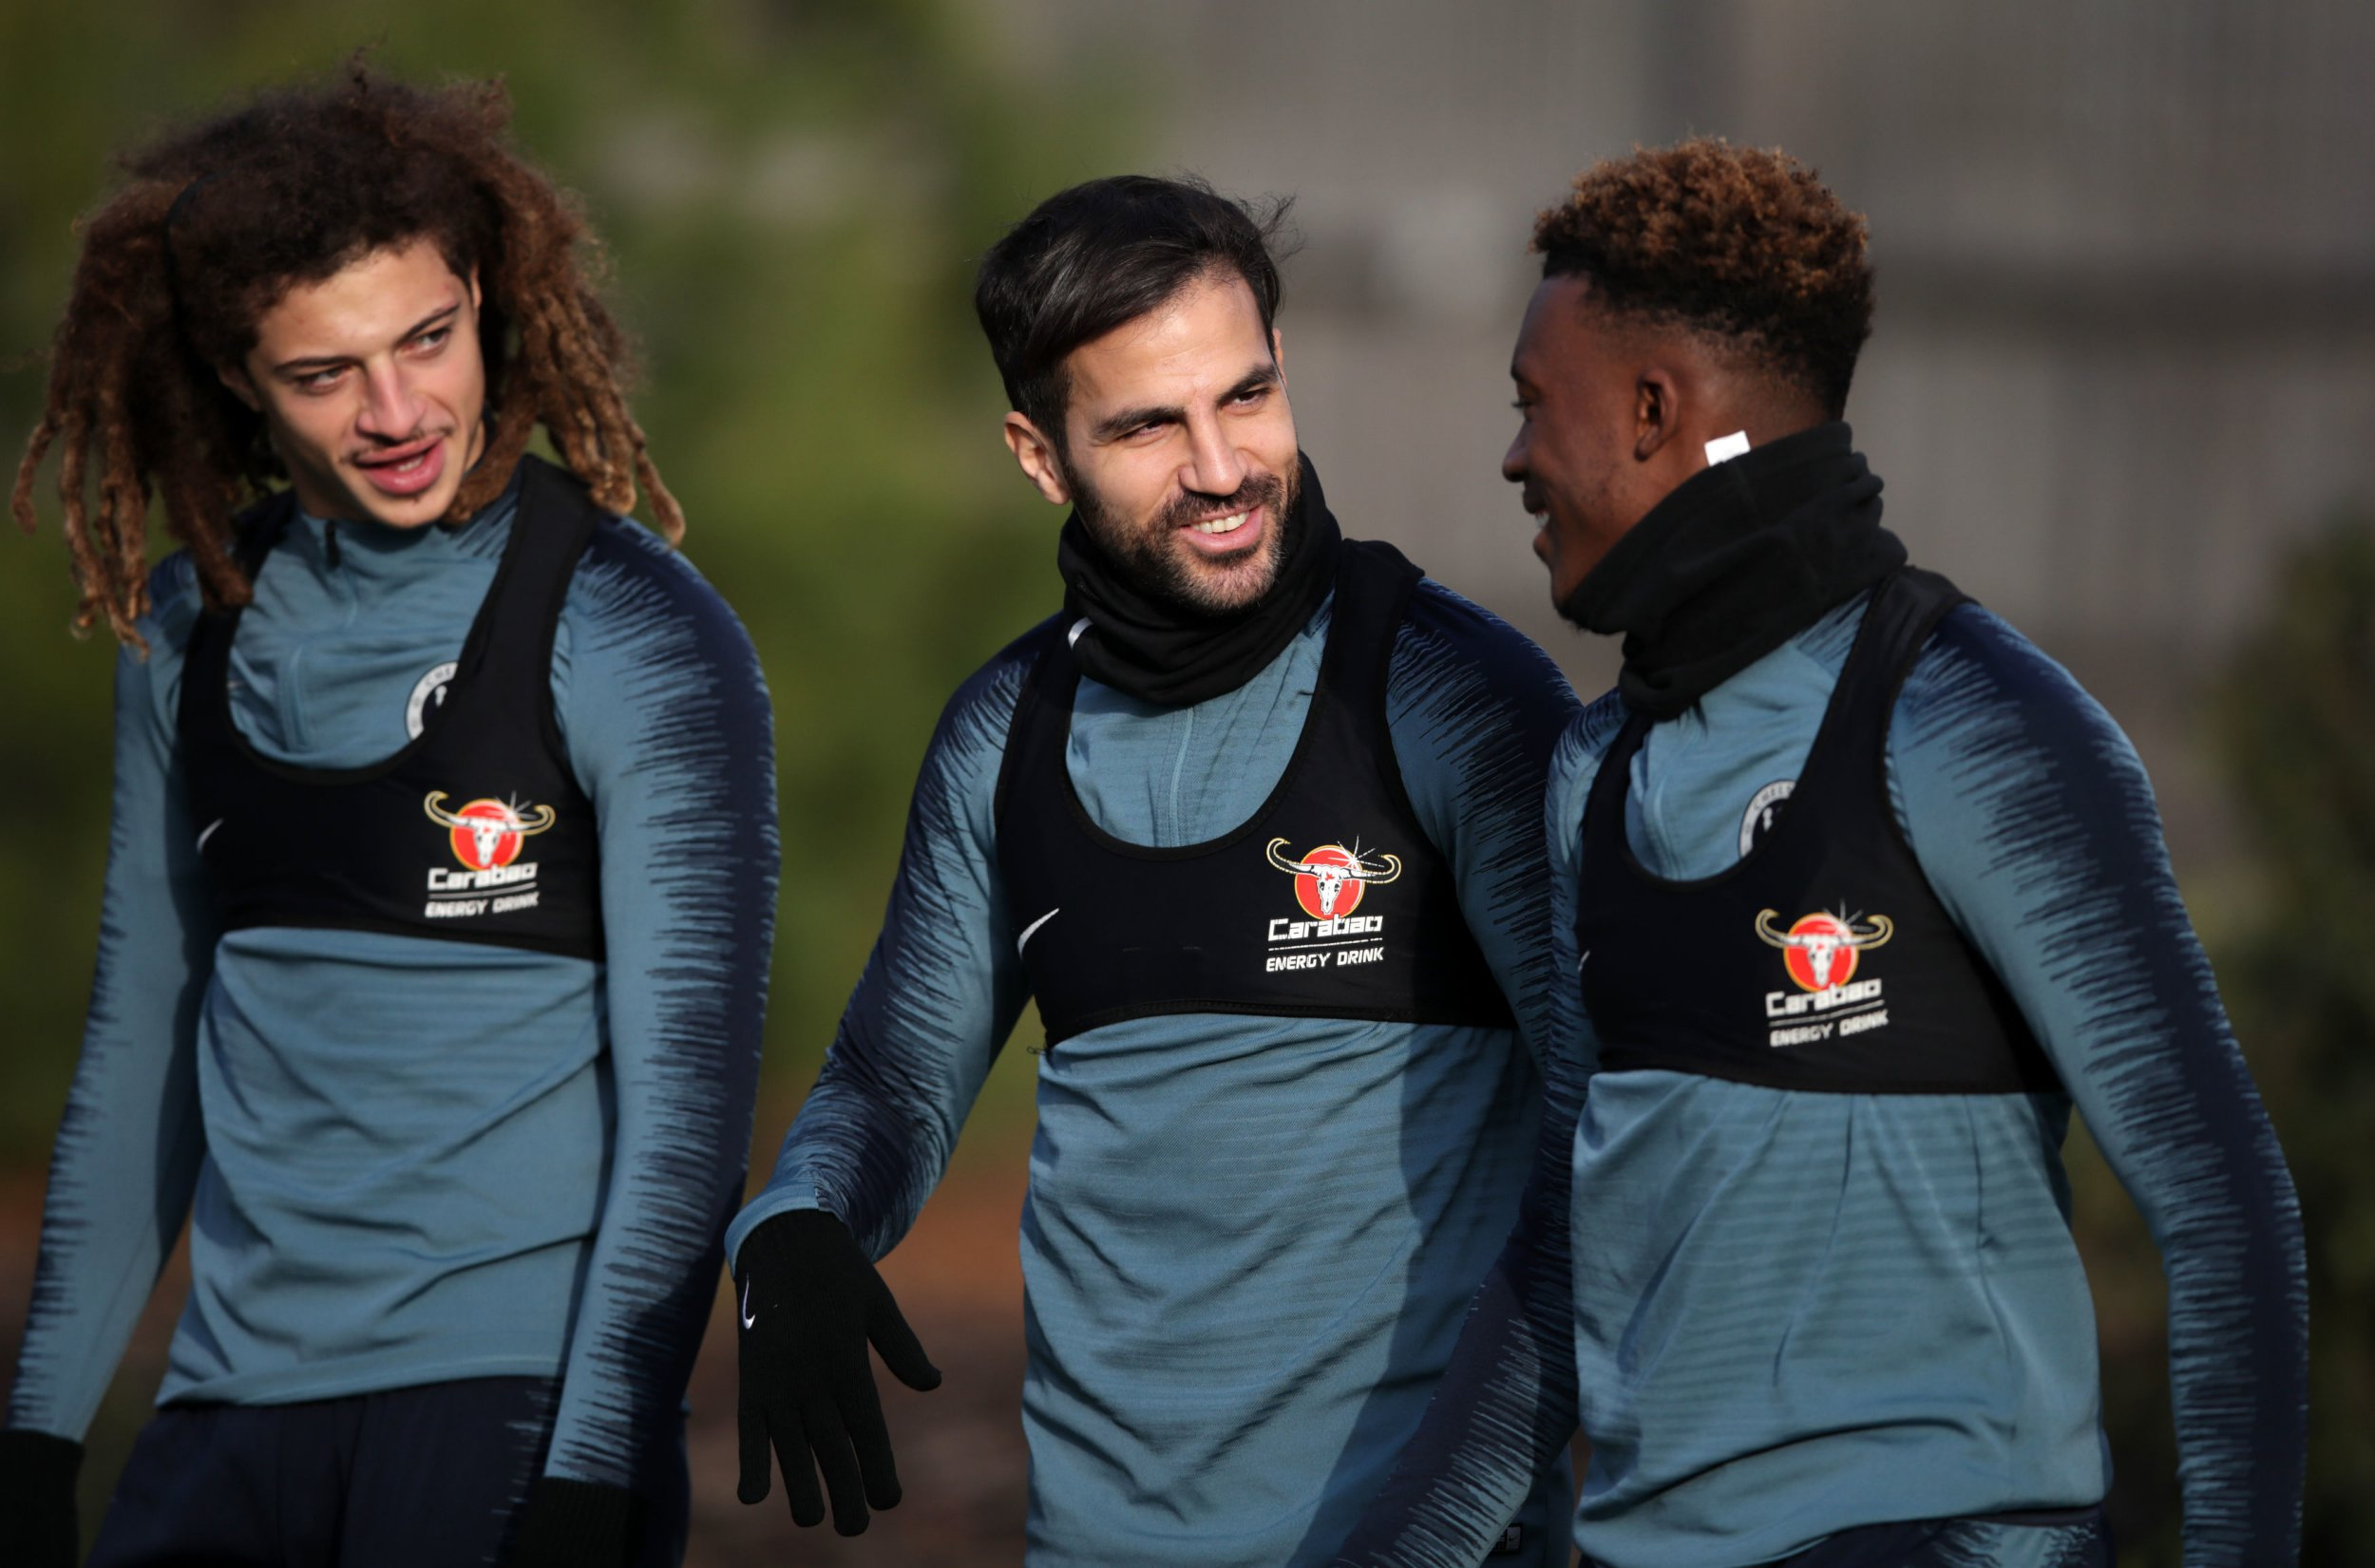 Chelsea's Cesc Fabregas and Callum Hudson-Odoi during the training session at Cobham Training Ground, London. PRESS ASSOCIATION Photo. Picture date: Wednesday December 12, 2018. See PA story SOCCER Chelsea. Photo credit should read: John Walton/PA Wire